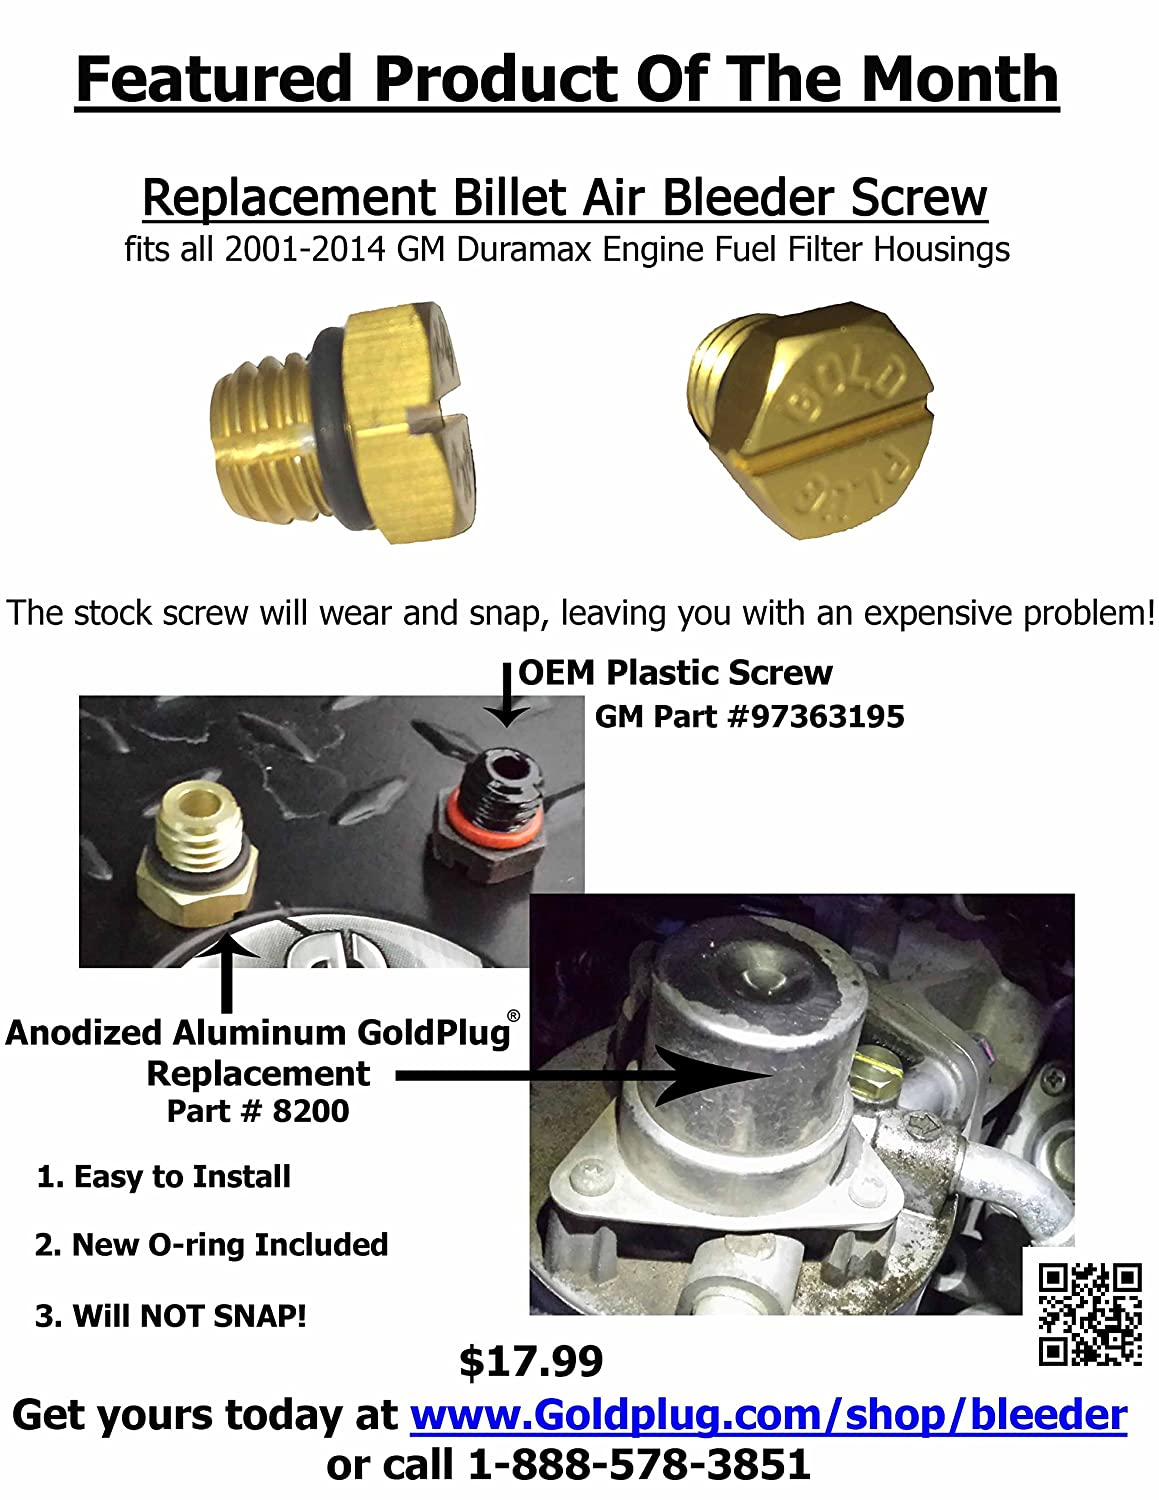 Amazon.com: Gold Plug 8200 Billet Air Bleeder Screw for 2001-2016 GM Duramax  Fuel Filter Housing: Automotive